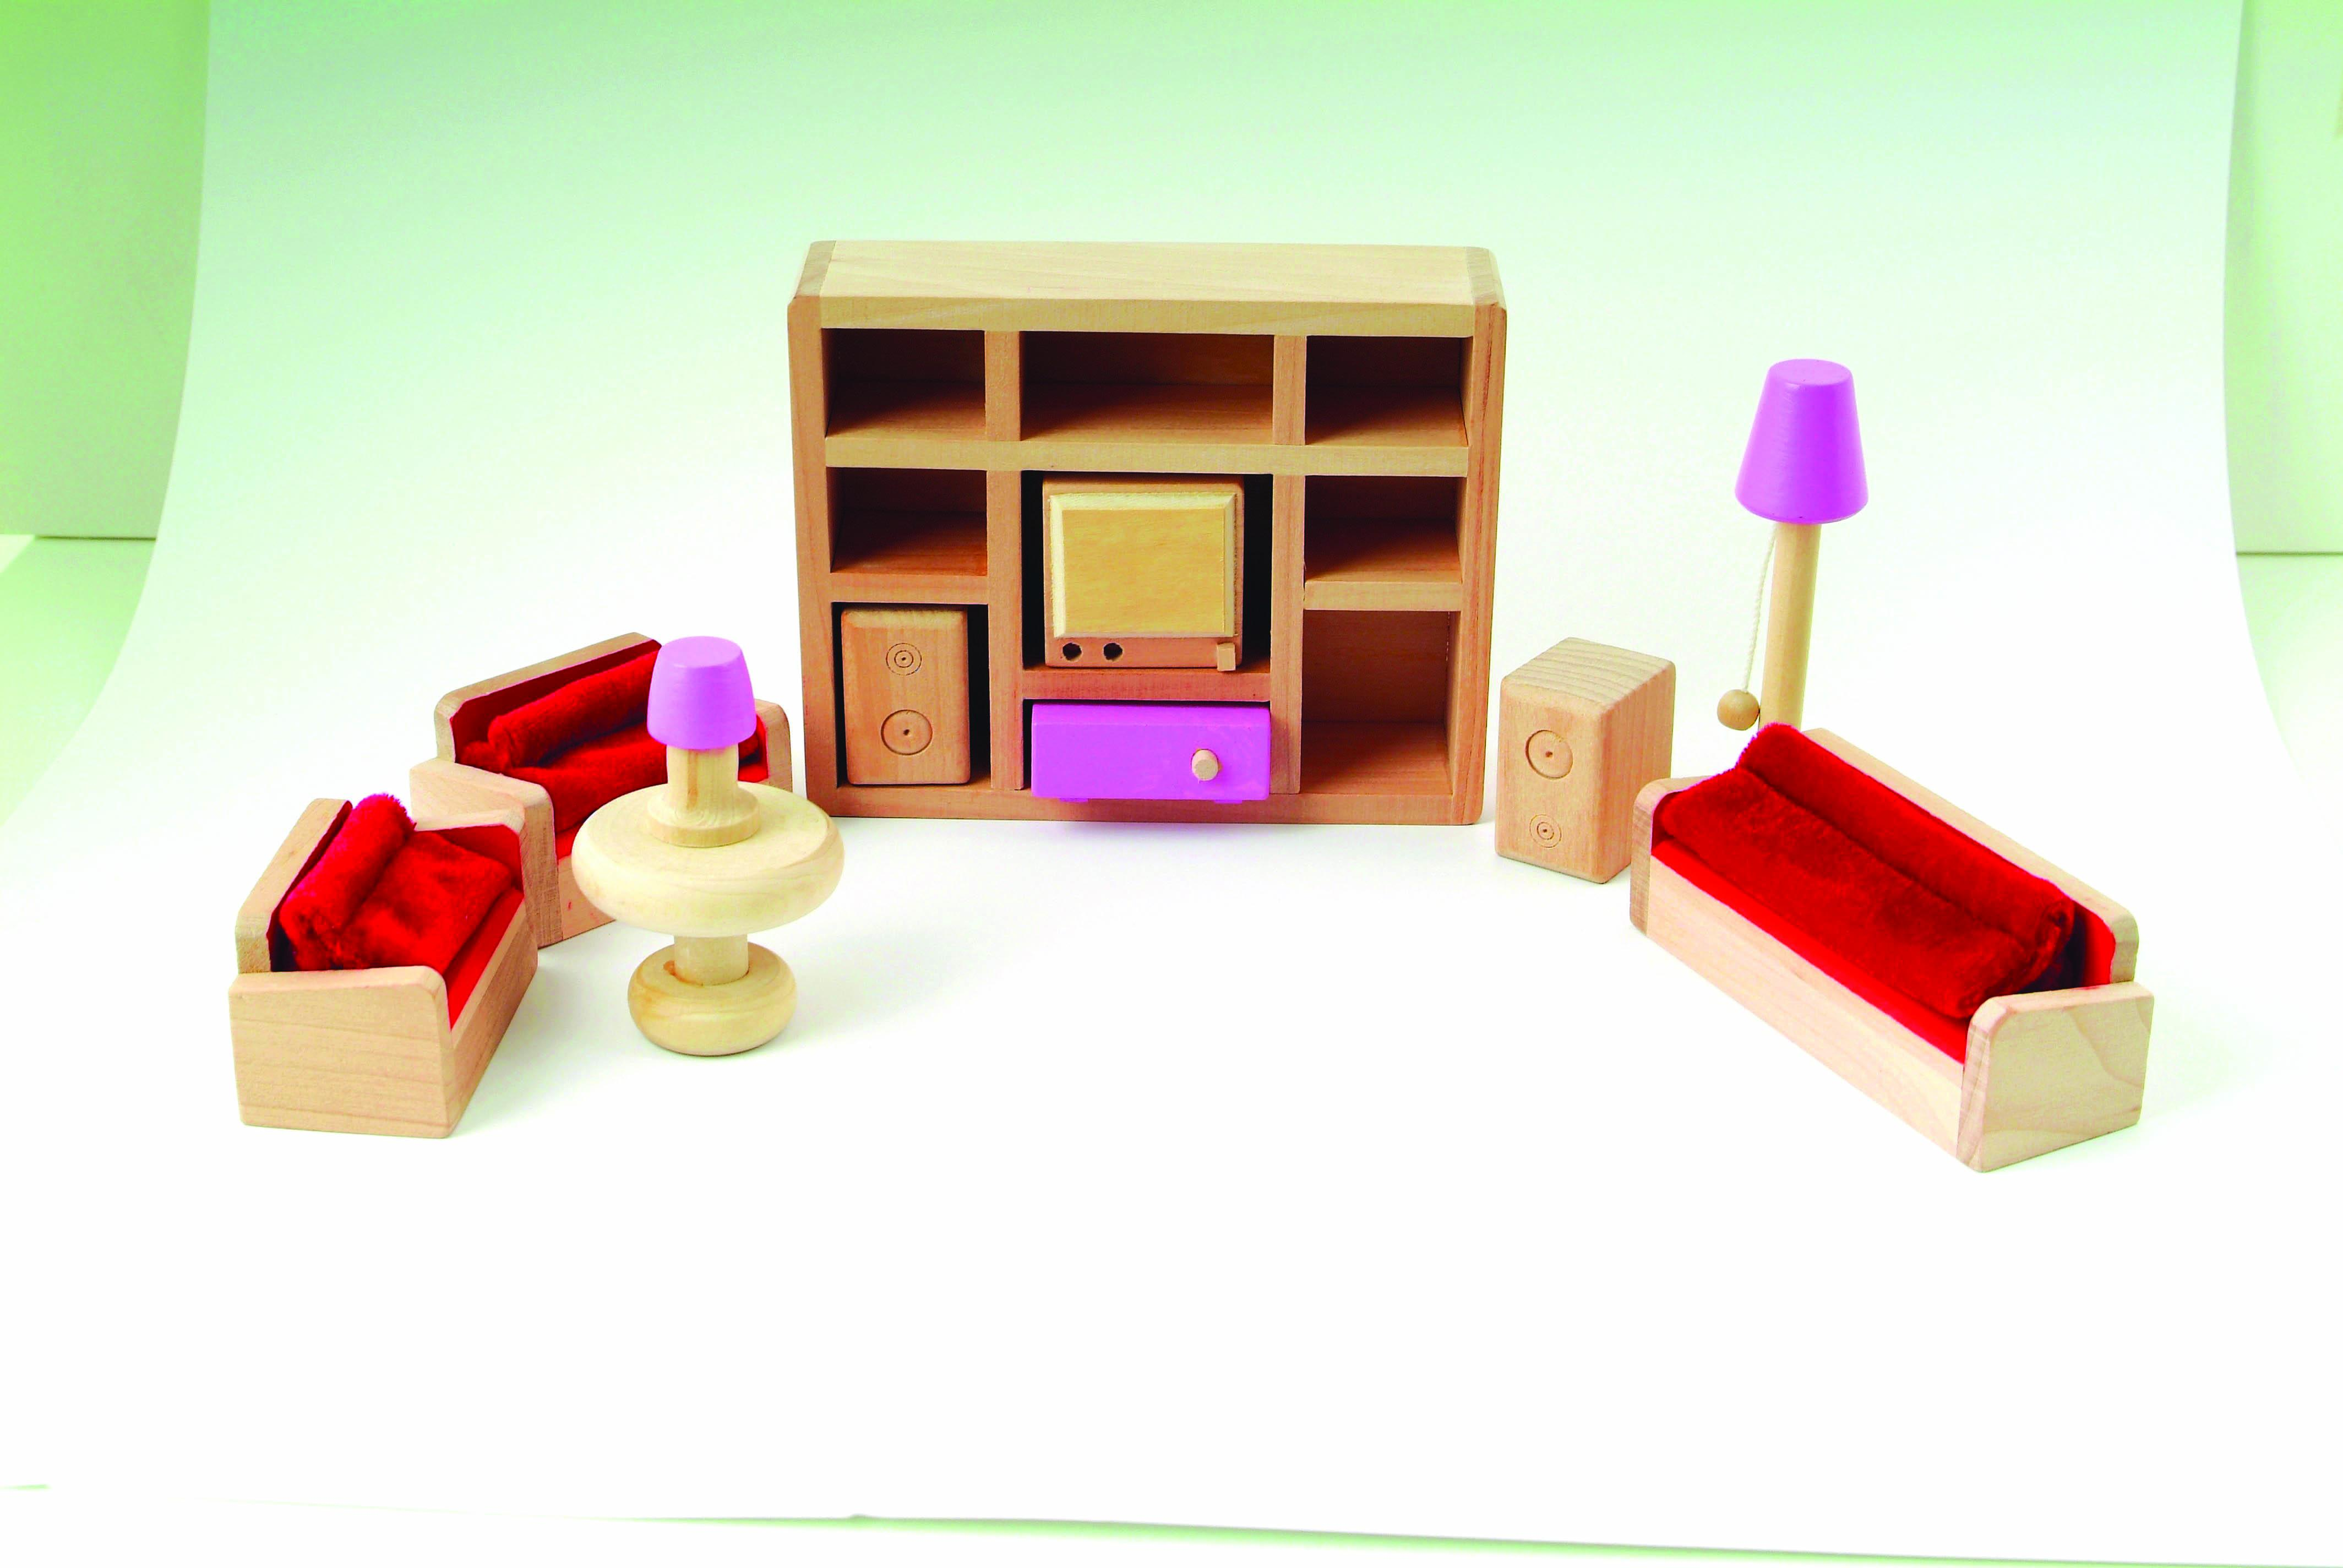 Le wooden toy dolls house with furniture Dolls wooden furniture